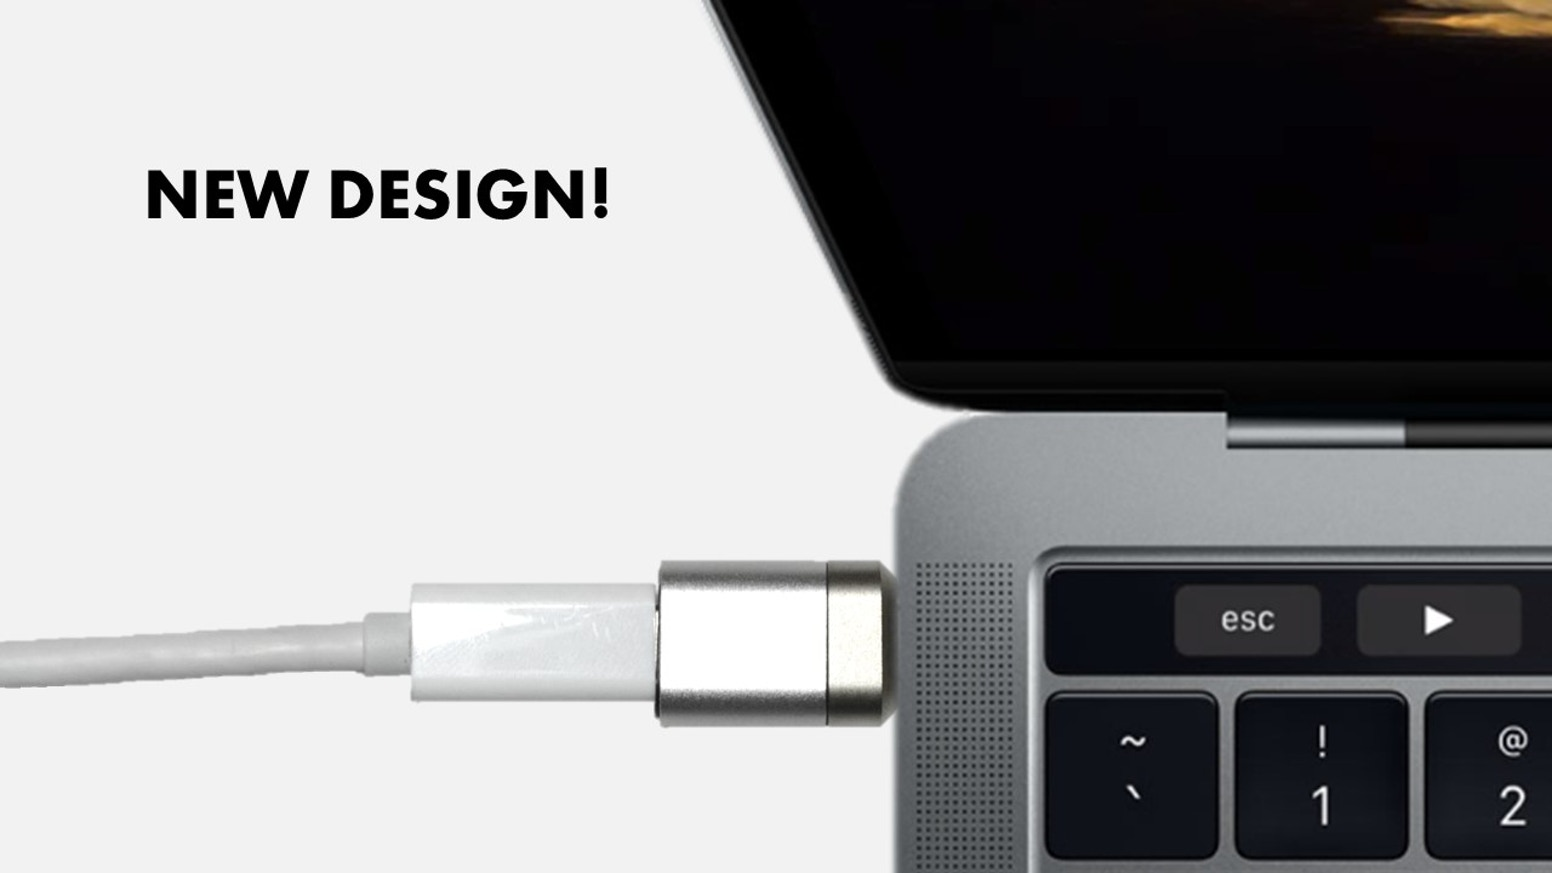 Magneo First True Usb C Magnetic Adapter By Branch Kickstarter Macbook Pro Charger Wiring Diagram The Only Magsafe Style With Charging Data Video For